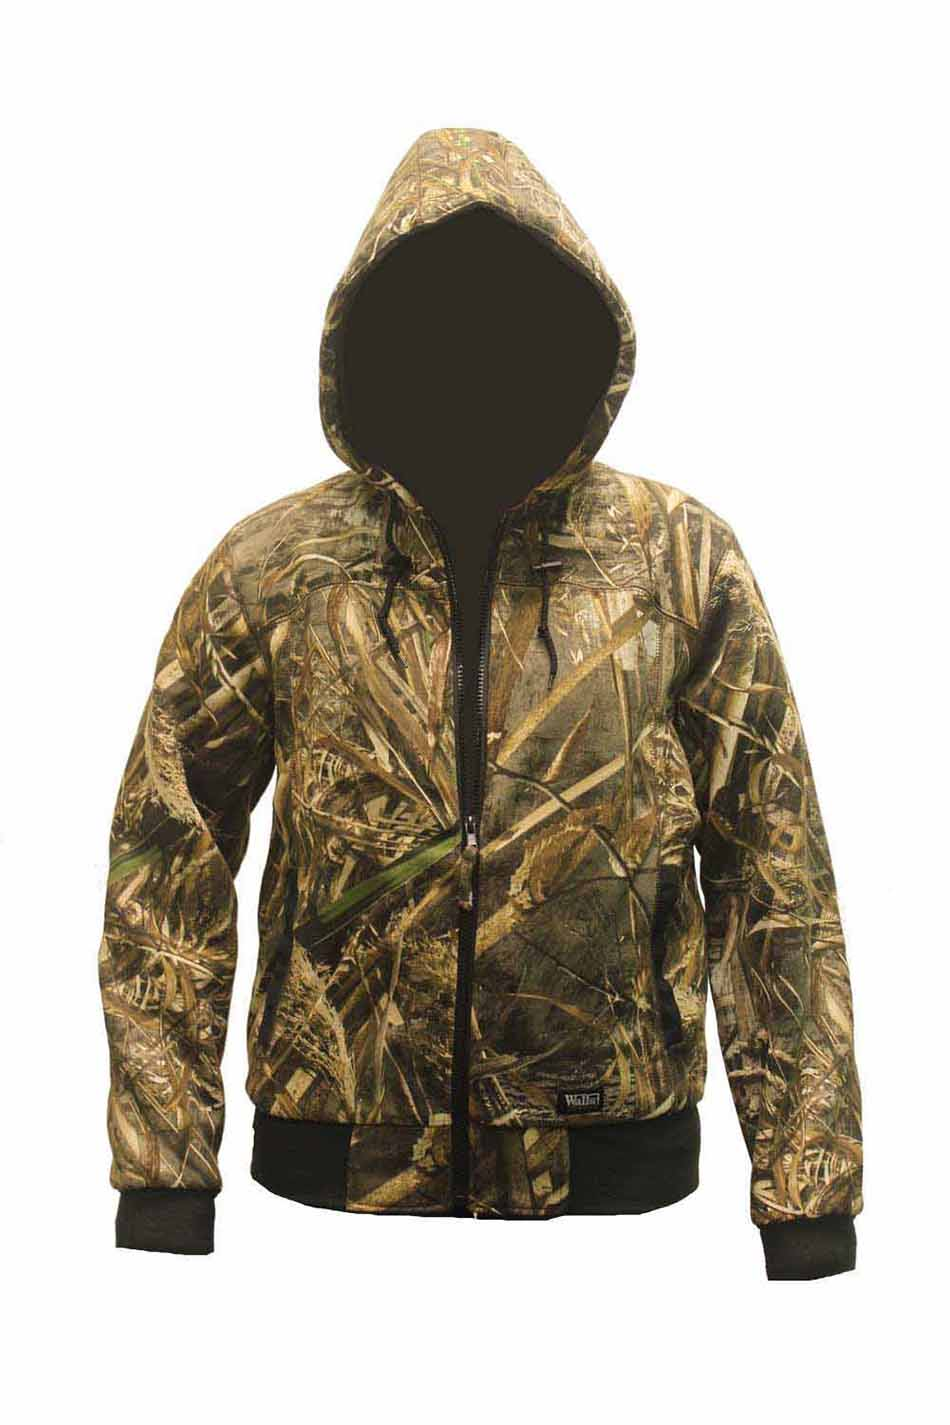 Walls Women's Insulated Quilted Fleece Hooded Jacket in Realtree Max 5_1.jpg